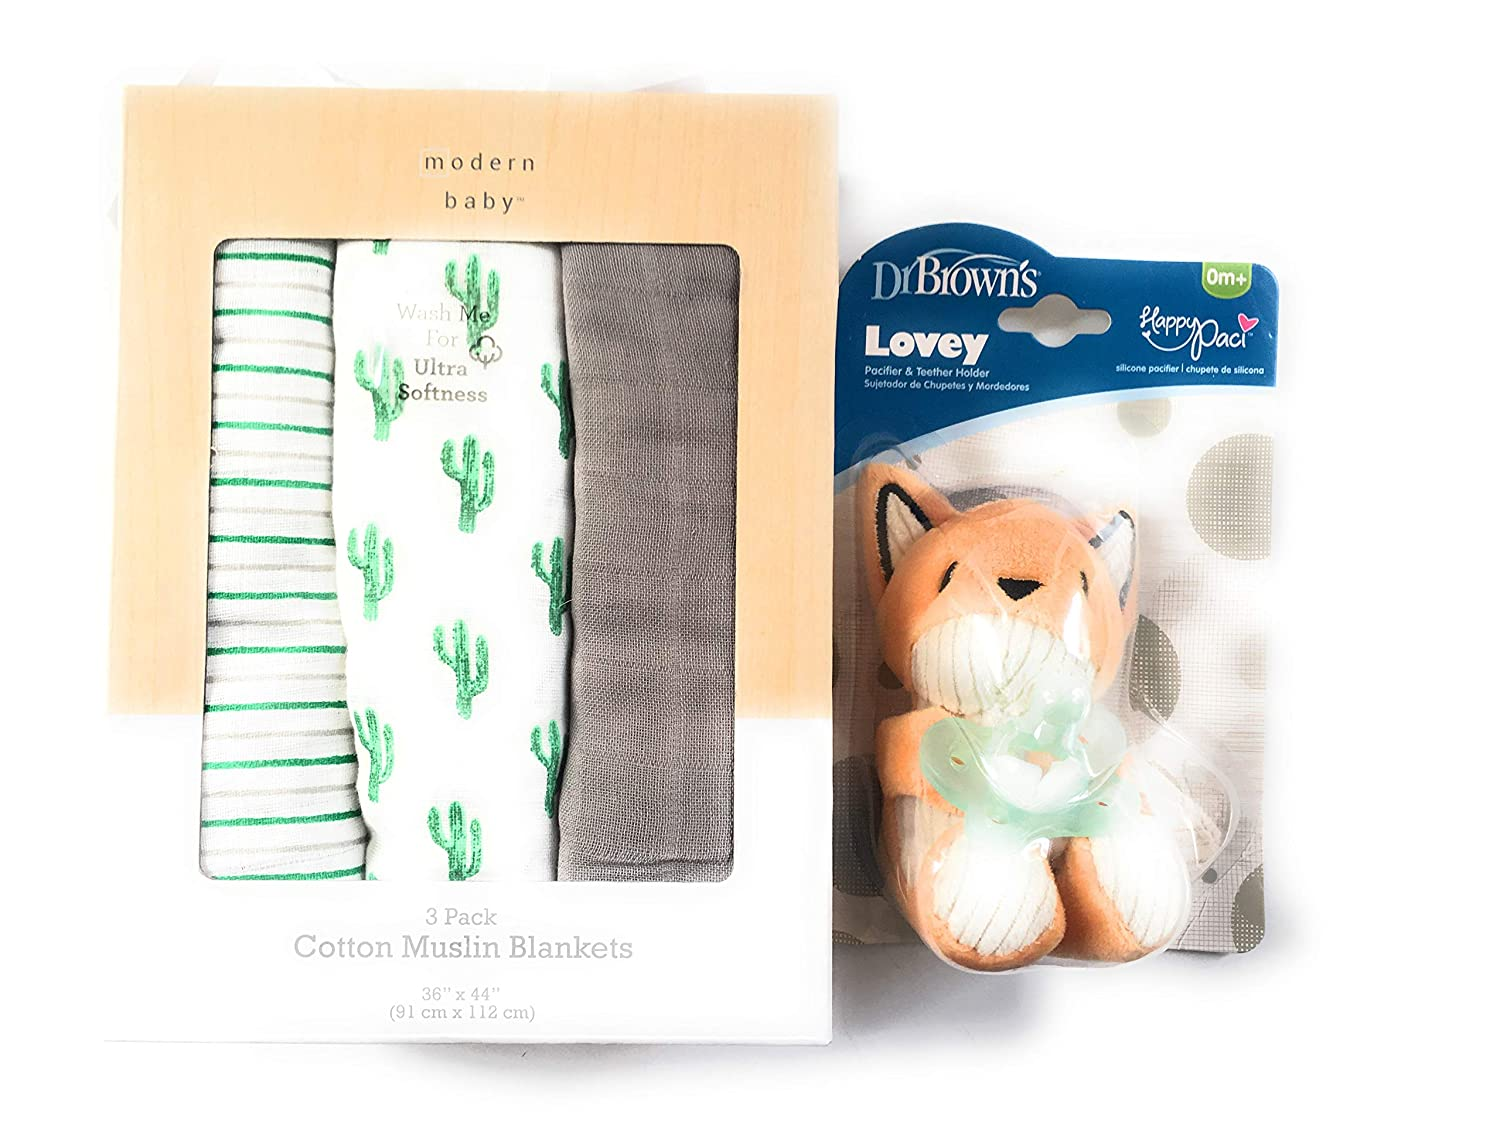 Amazon.com: DR. BROWNS Lovey PACIFIER & TEETHER HOLDER ...